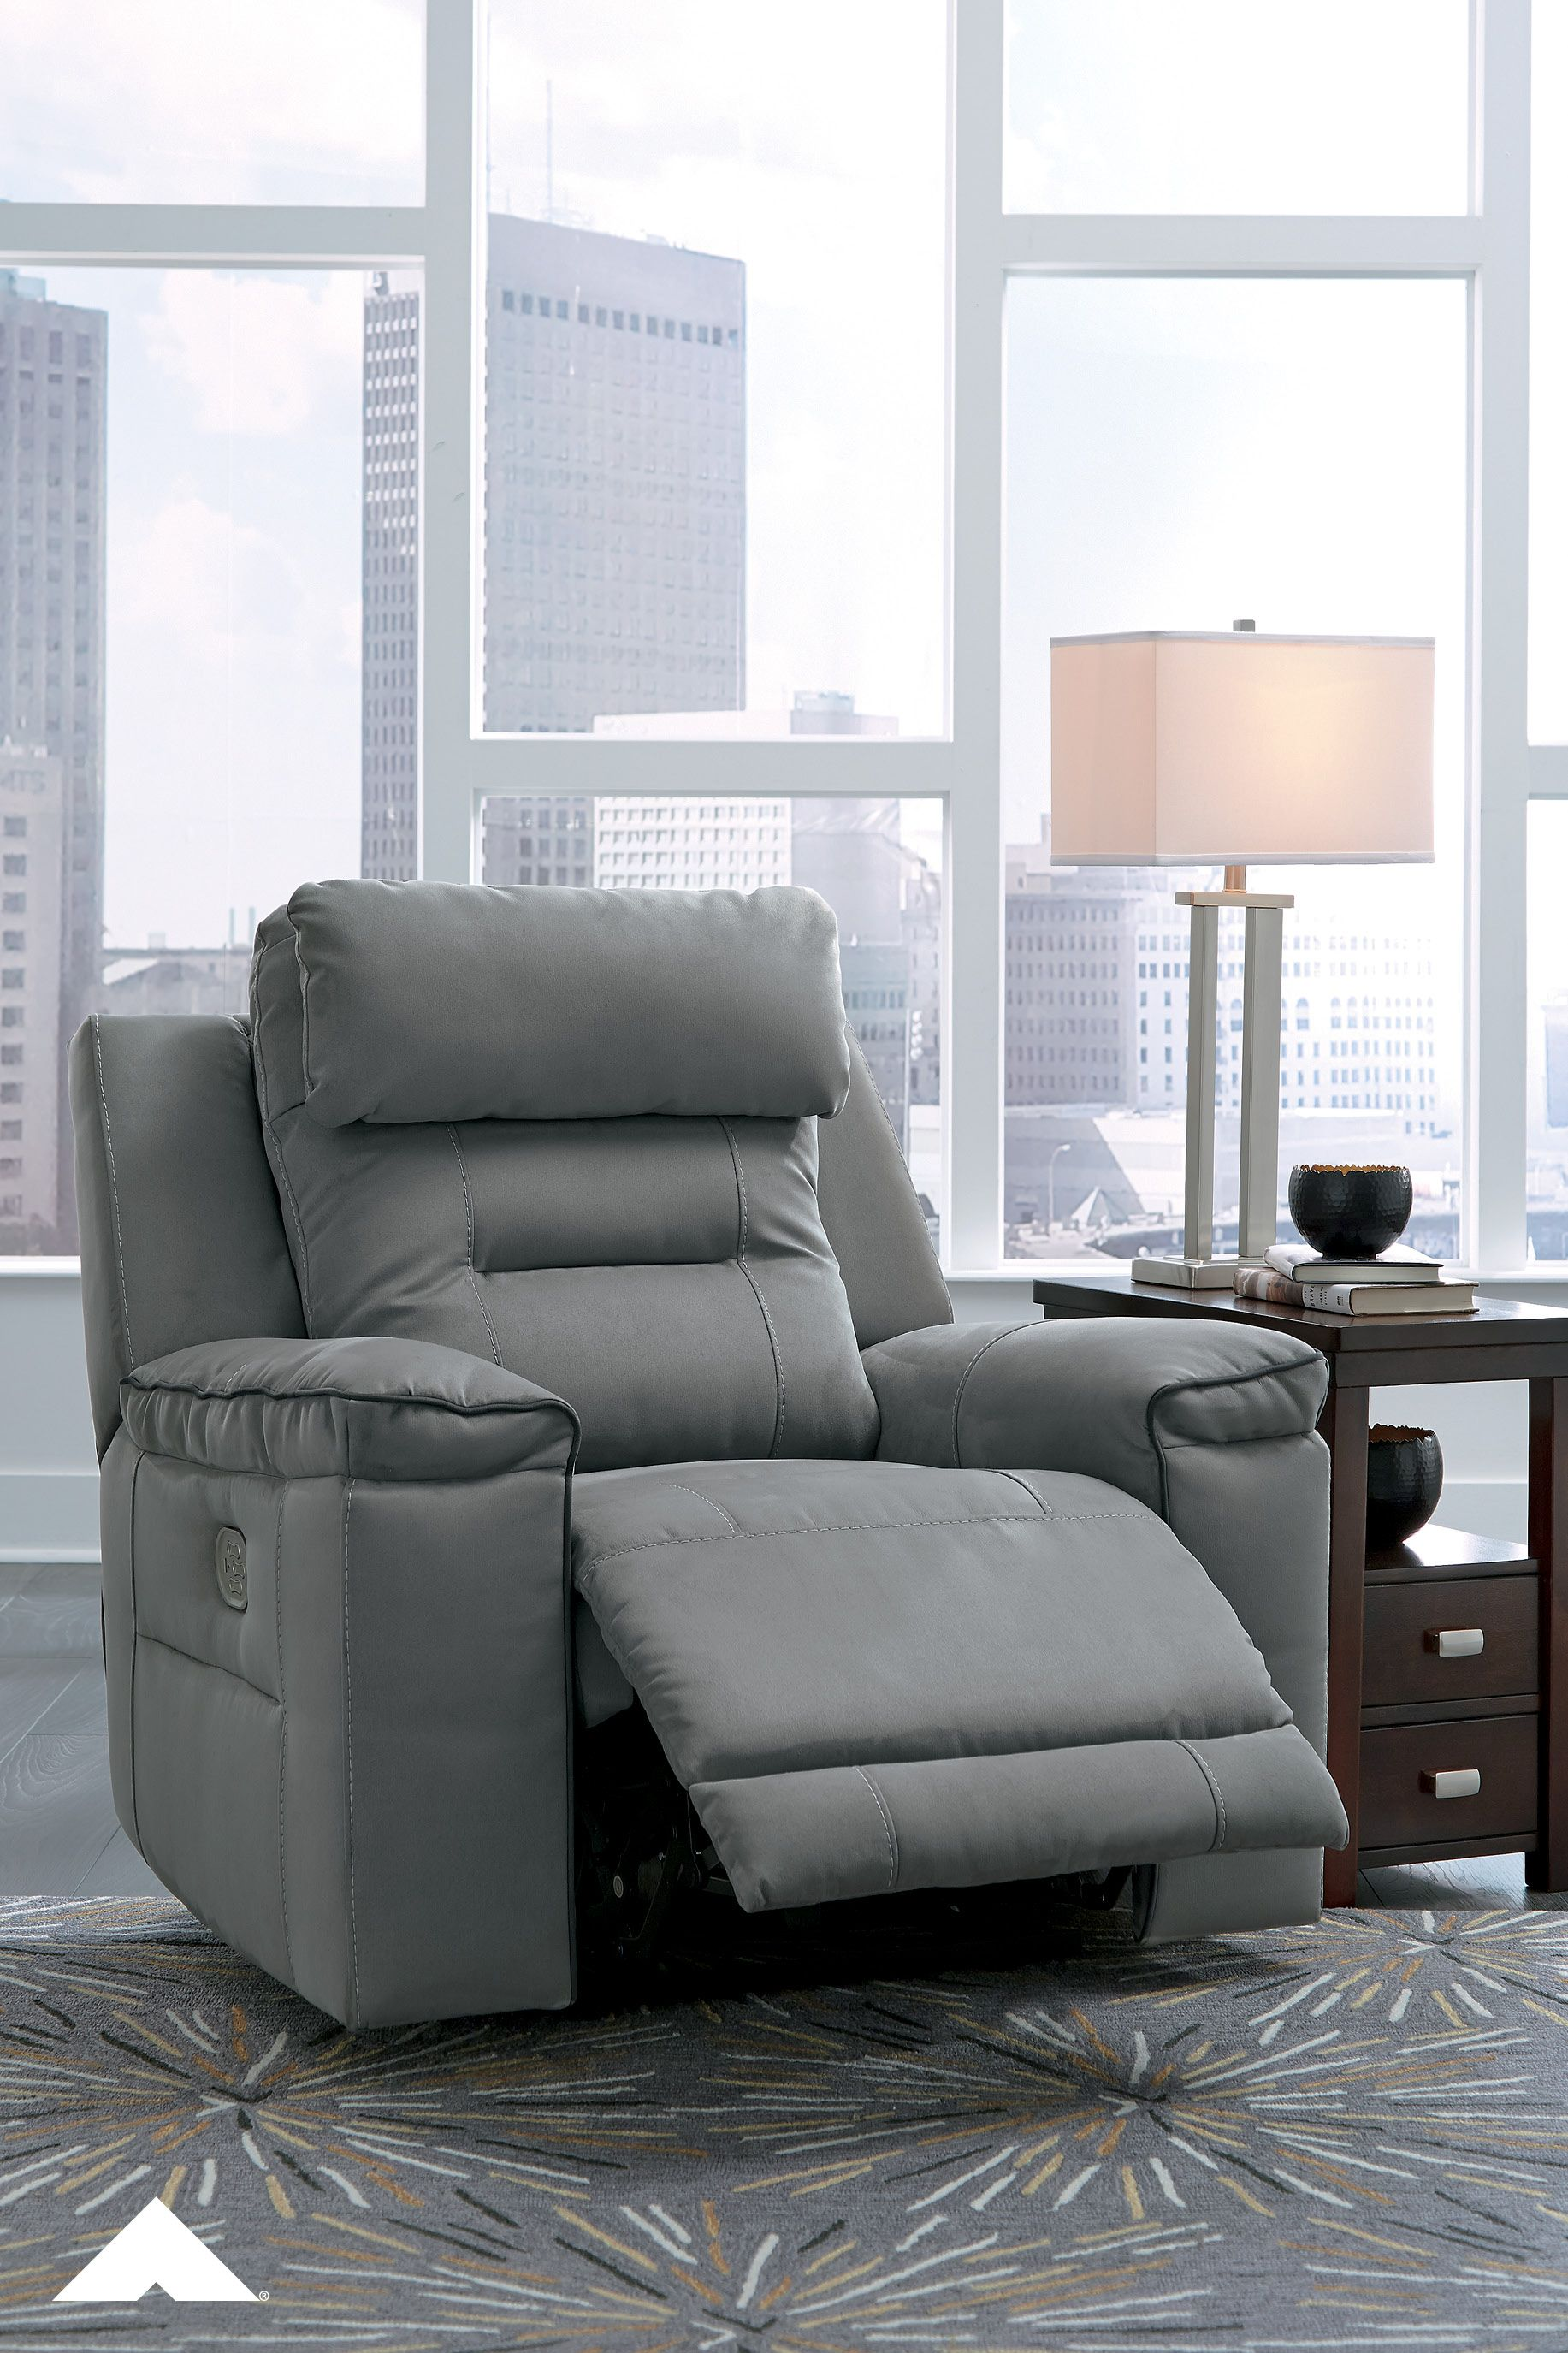 Trampton Smoke Recliner Looking To Get The Best Seat In The House This Stylish Power Recliner With Adjustable H Small Space Living Ashley Furniture Recliner